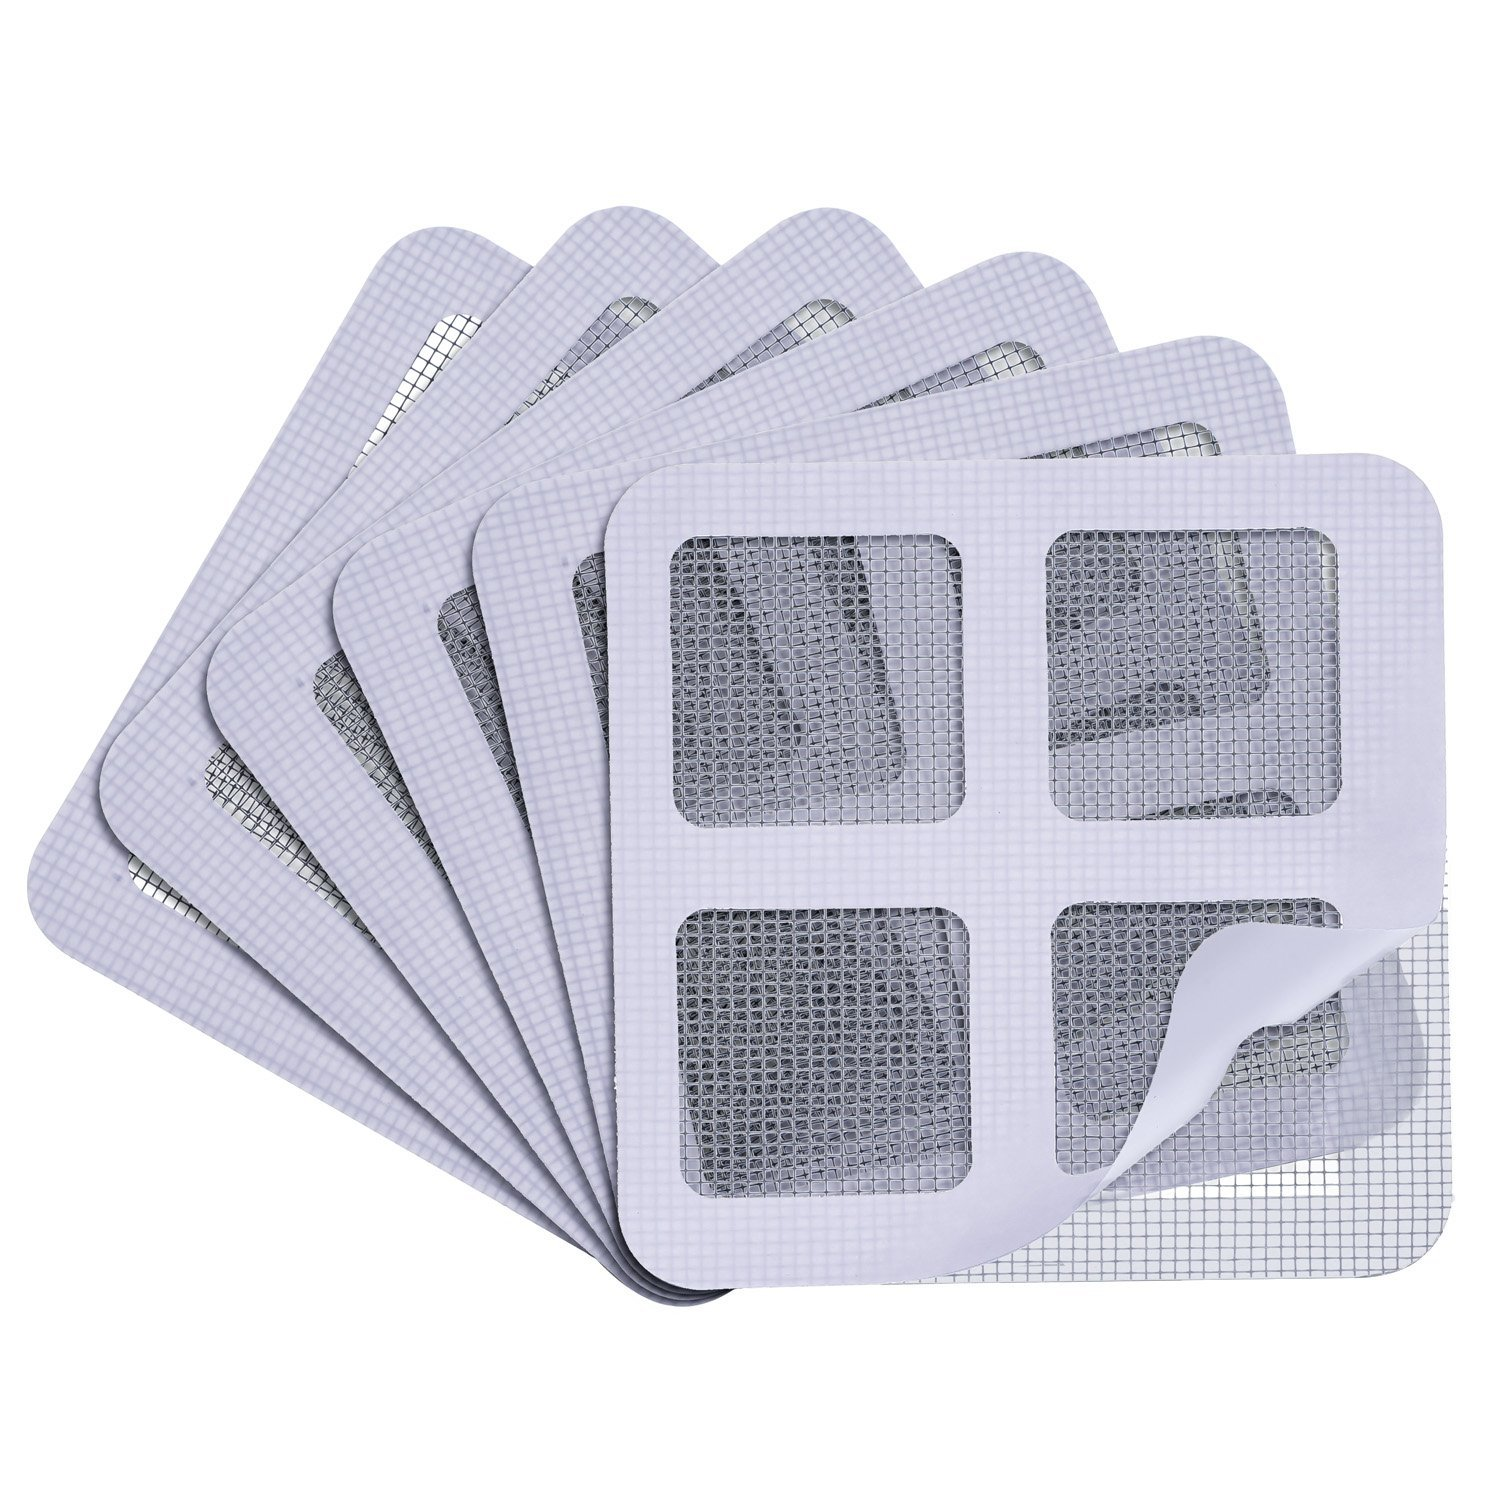 Window and Door Screen Repair Kit, Self-adhesive Fiberglass Screen Door Repair Patches, Cover up Holes and Tears, Prevent Mosquito Insects Fly (3.94